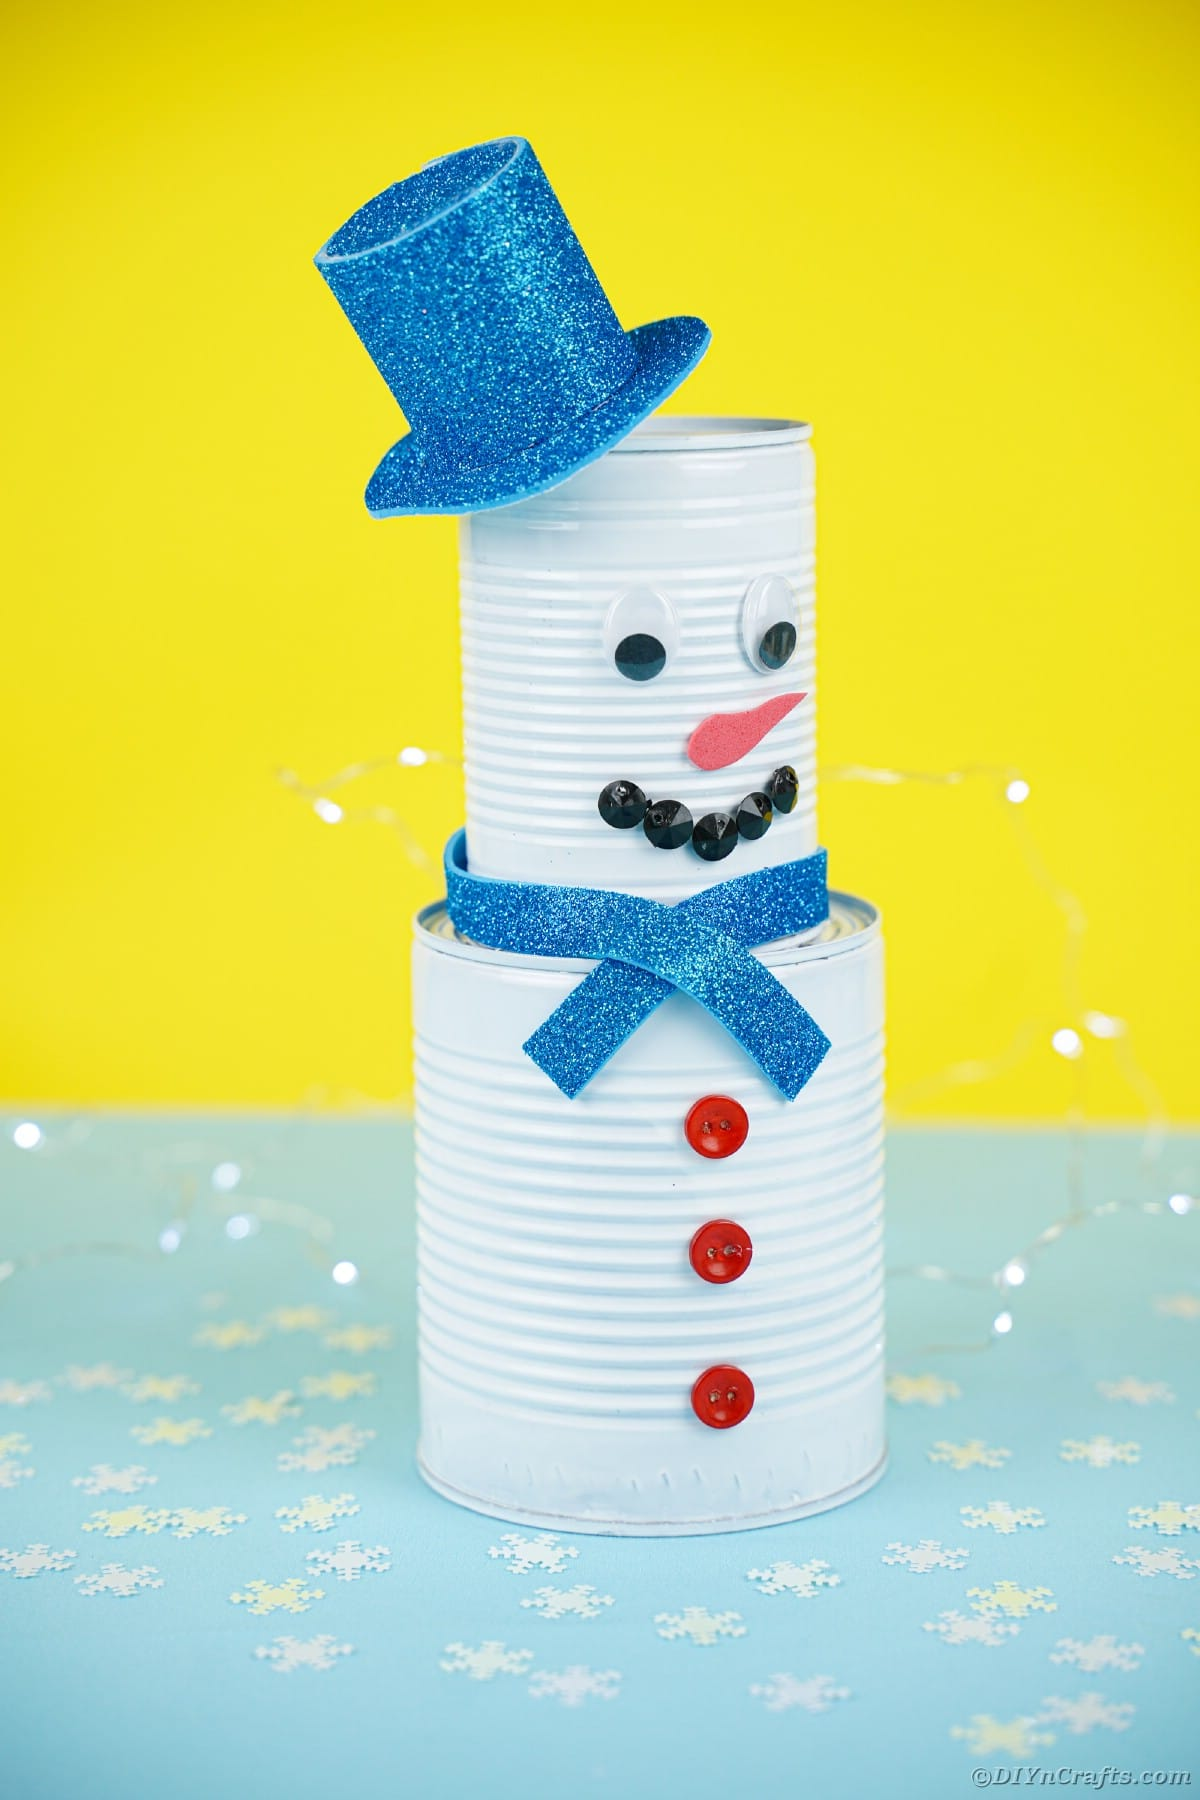 Tin can snowman against yellow background